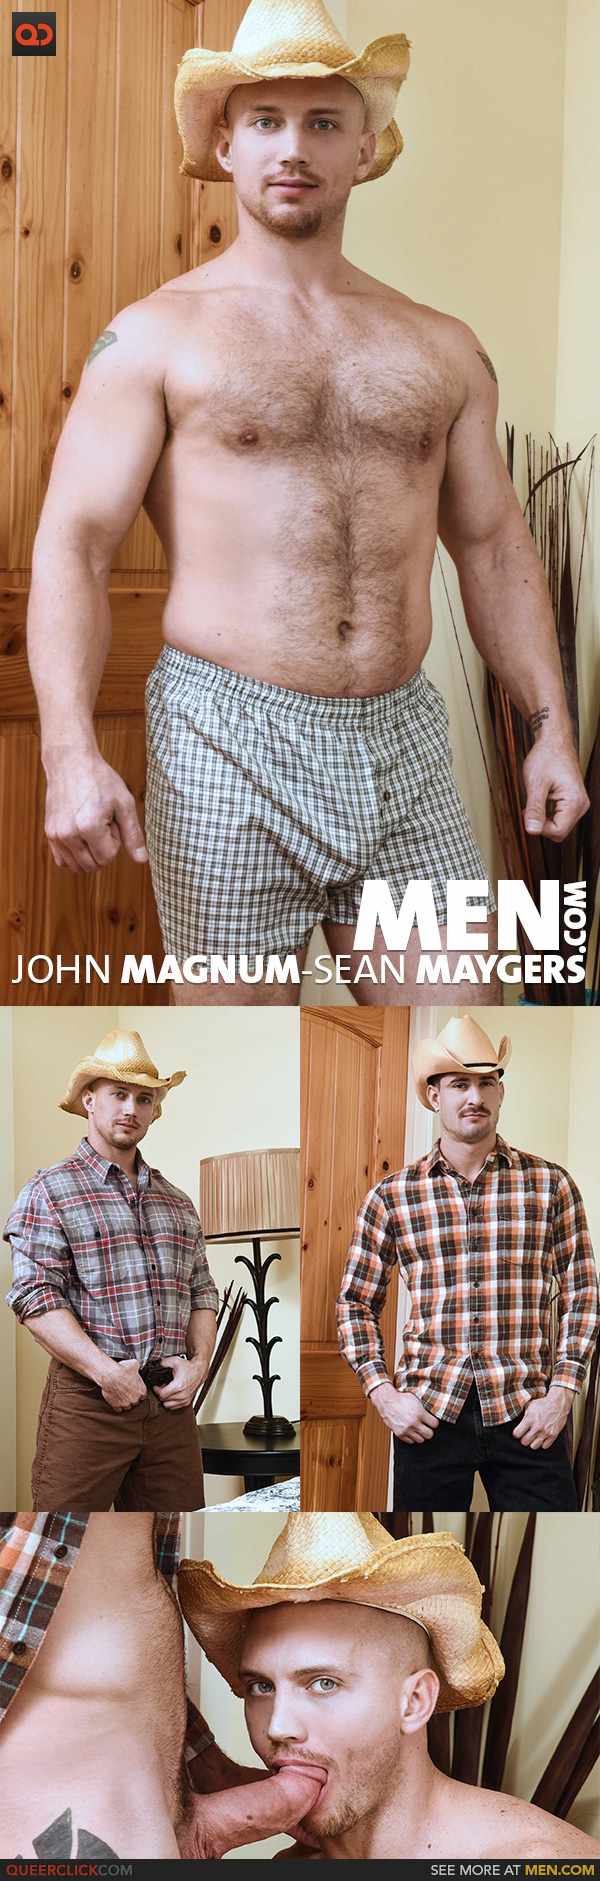 Men.com:  John Magnum and Sean Maygers